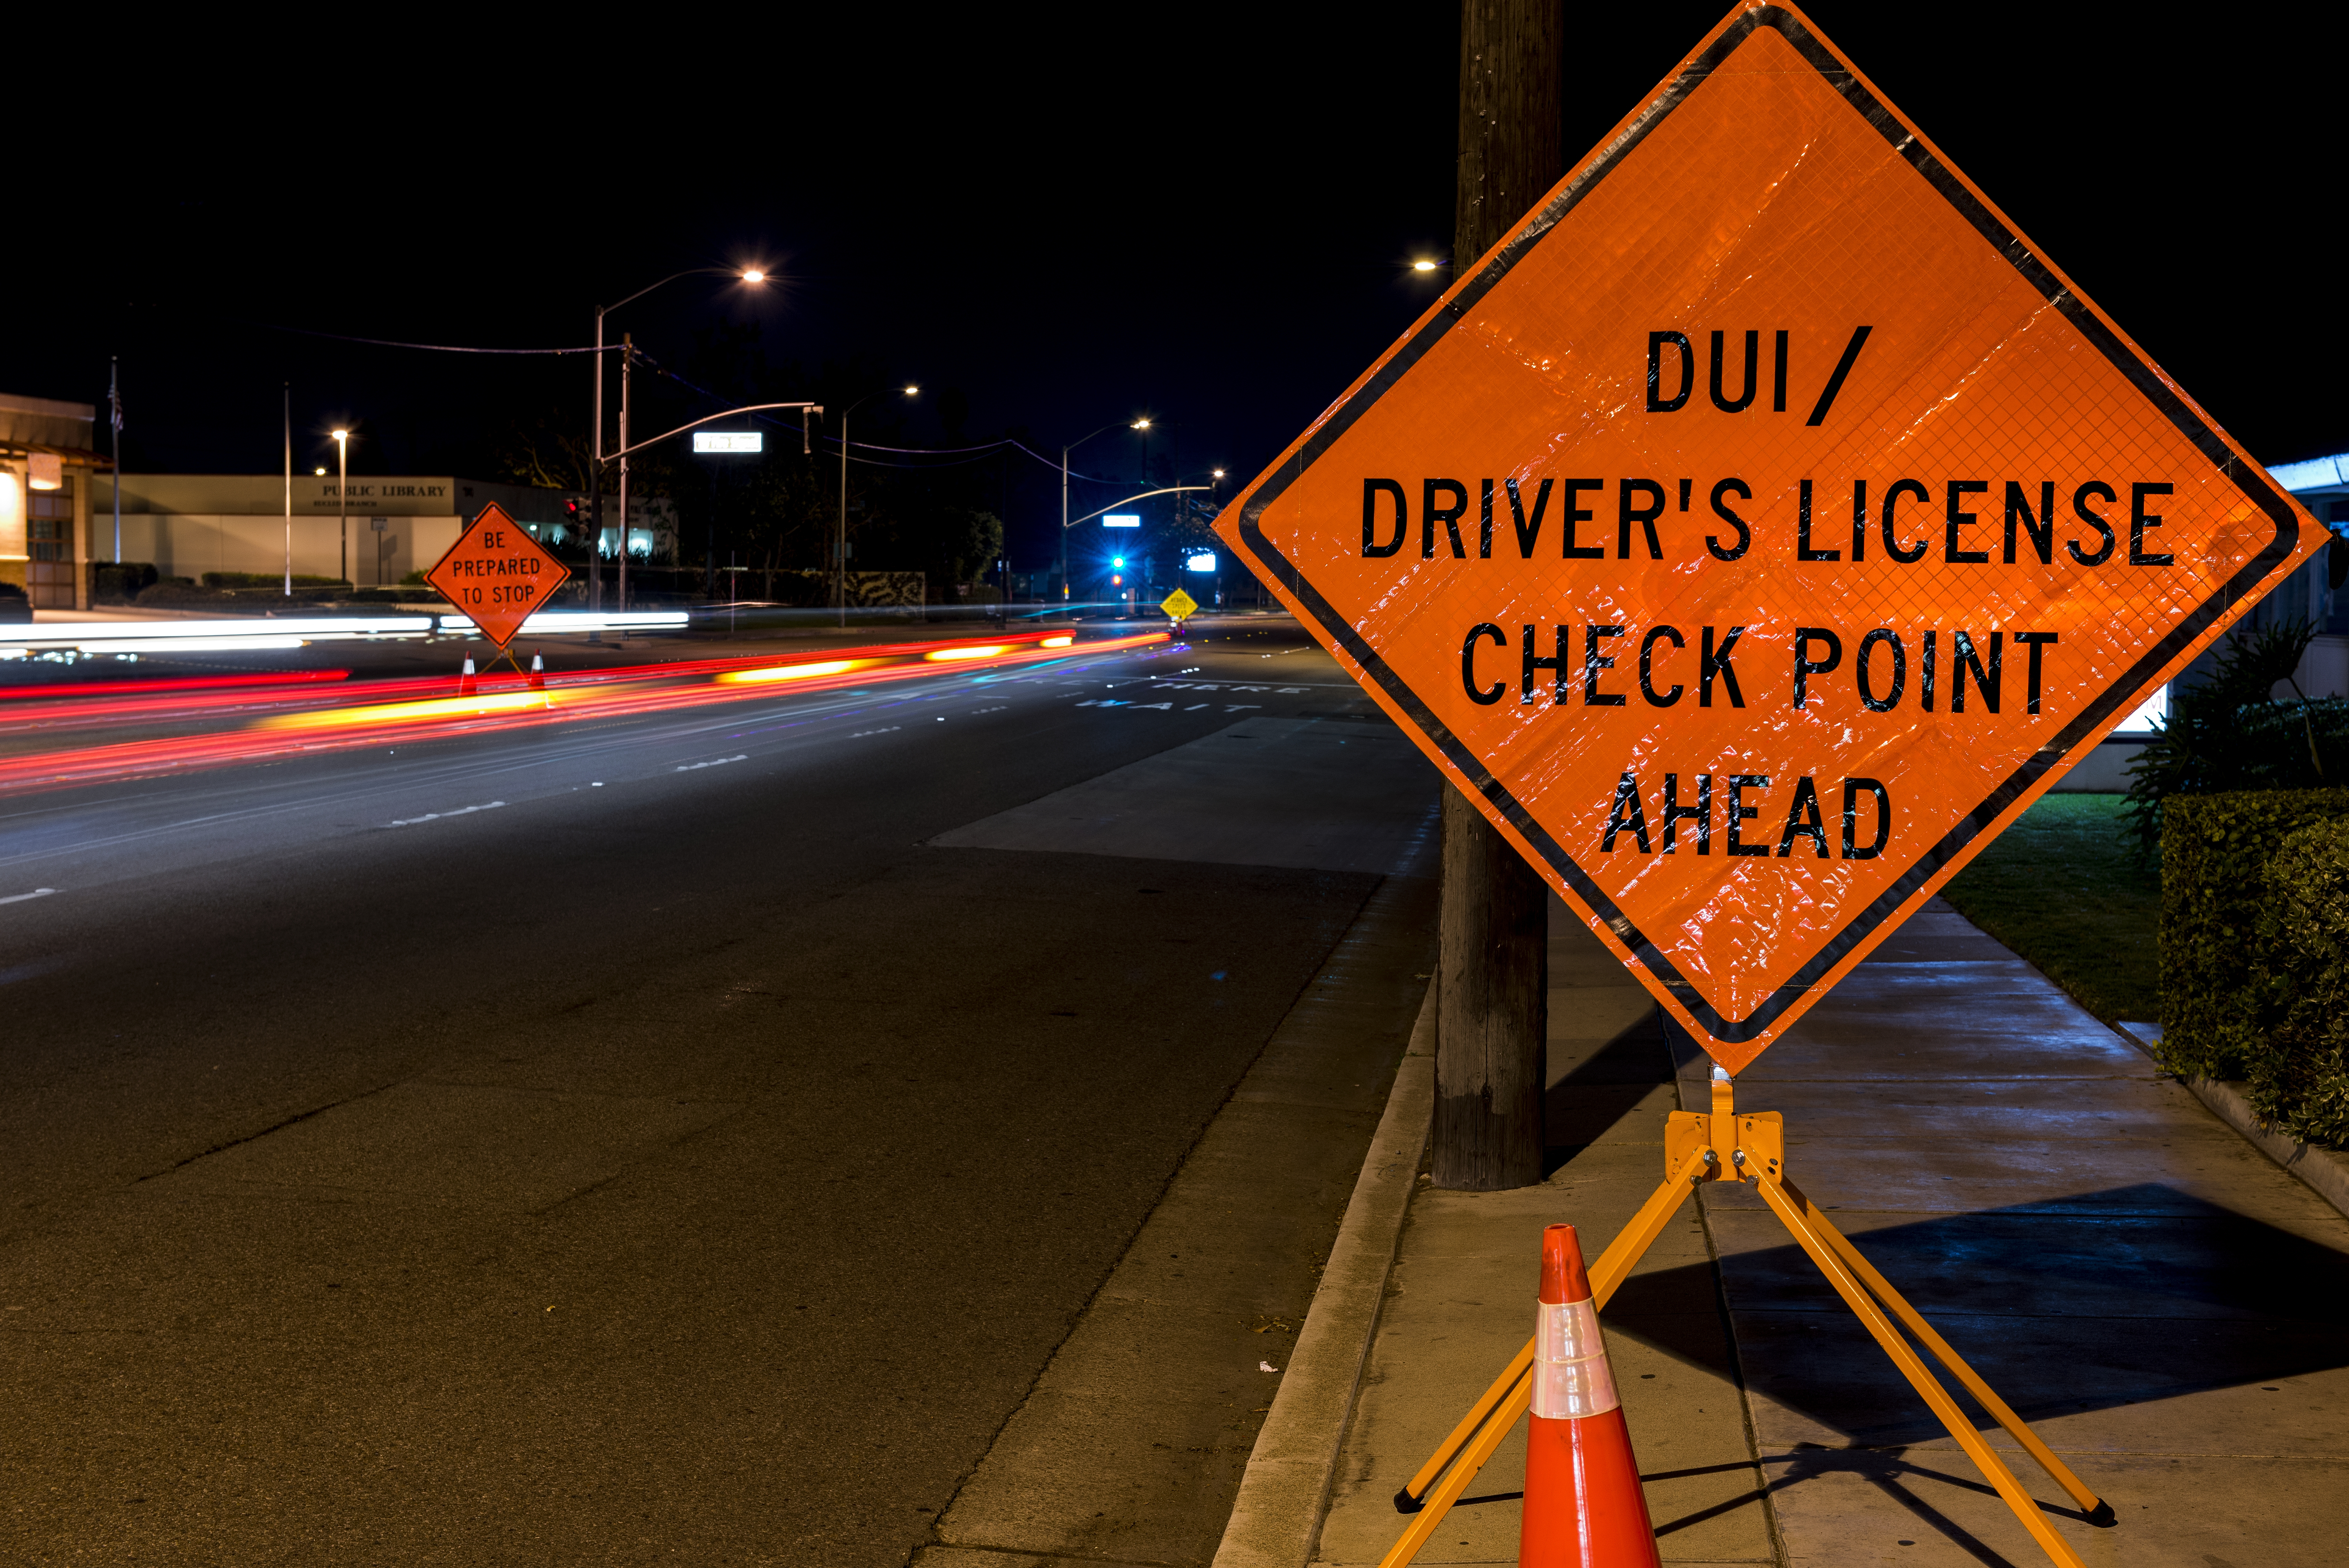 Key Facts About DUI Checkpoints